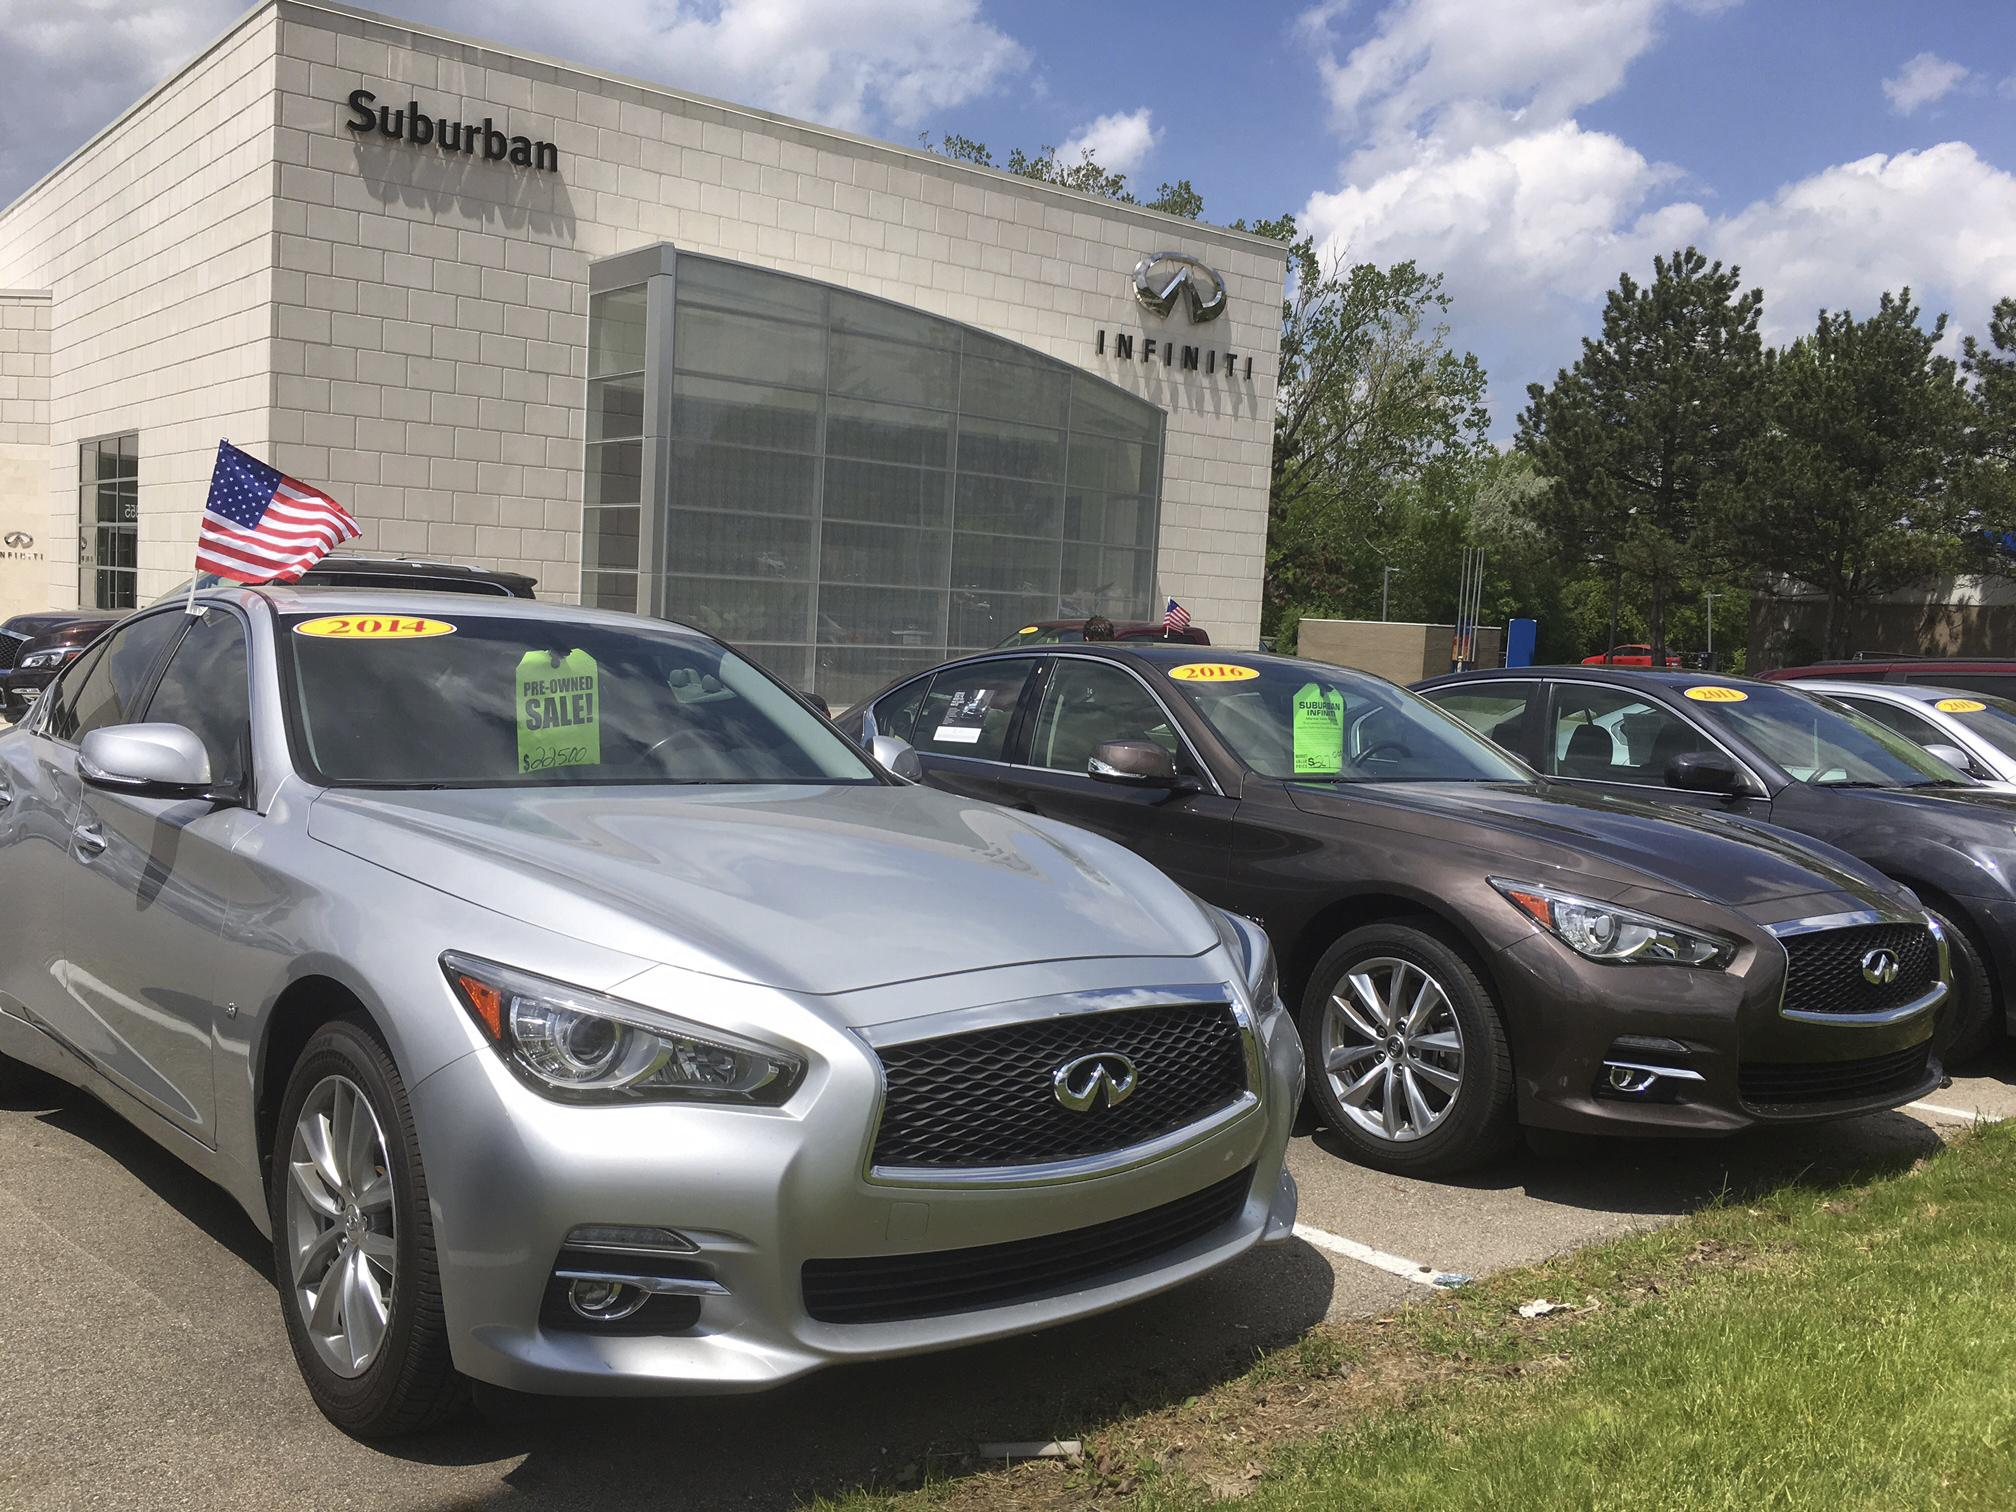 Used Infiniti Cars for Sale Near Me Lovely Off Lease Used Cars are Flooding Market Pushing Prices Down